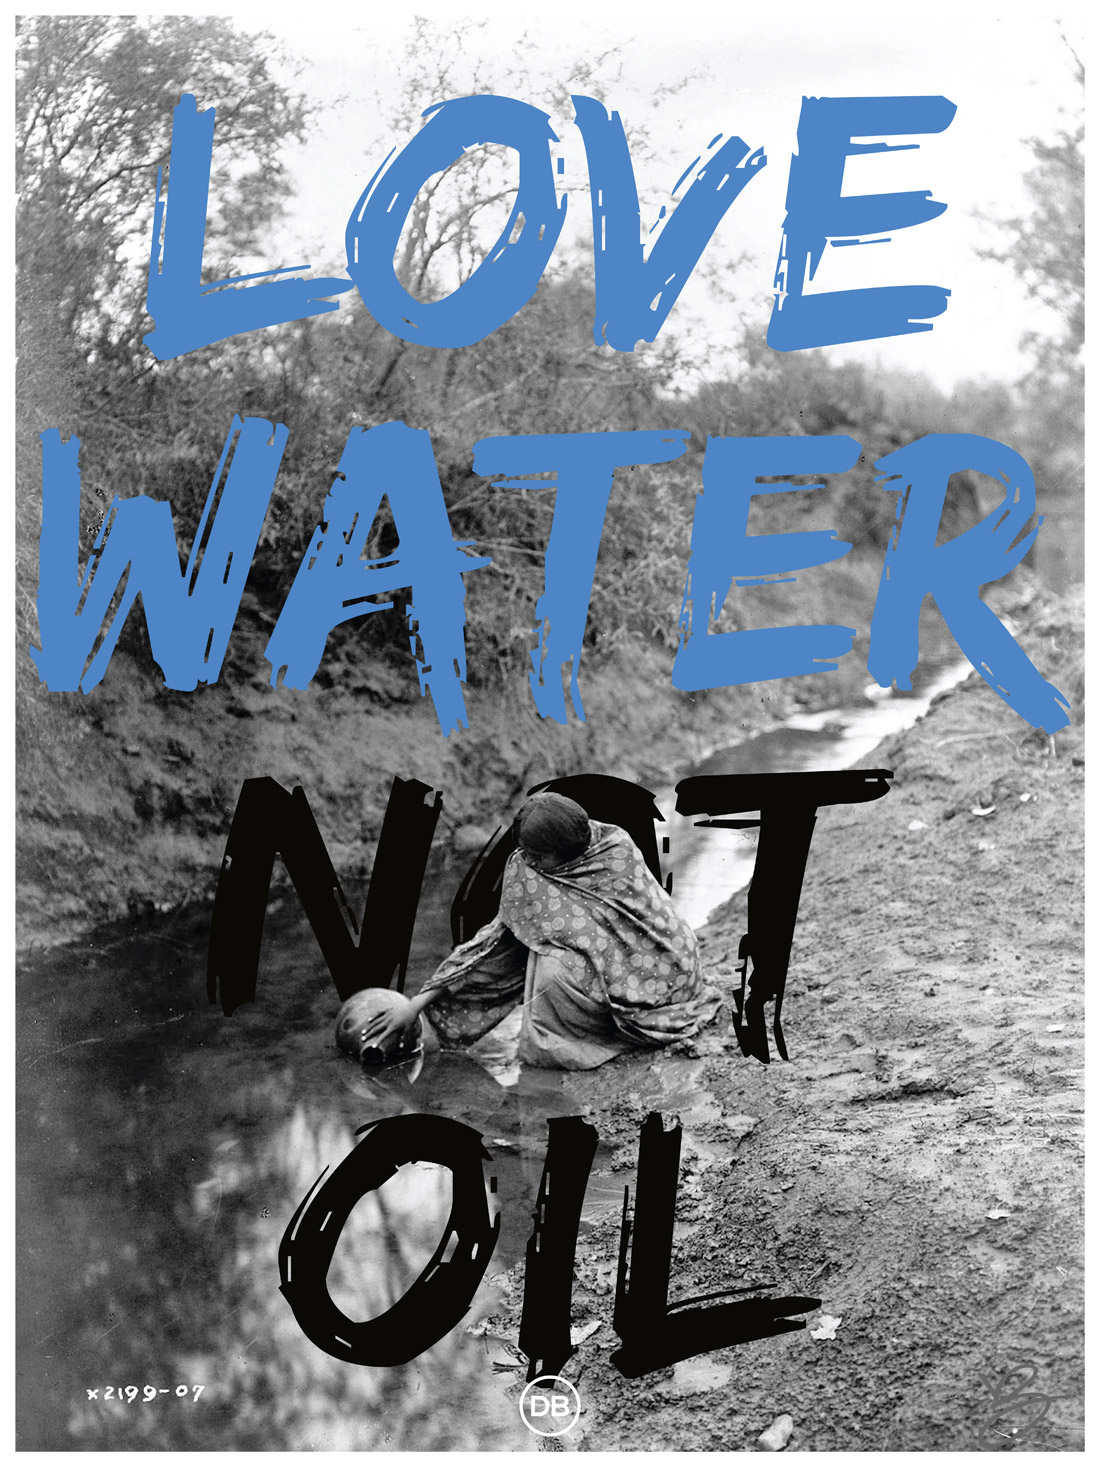 David Bernie Love Water not Oil Indian Country 52 Week 33